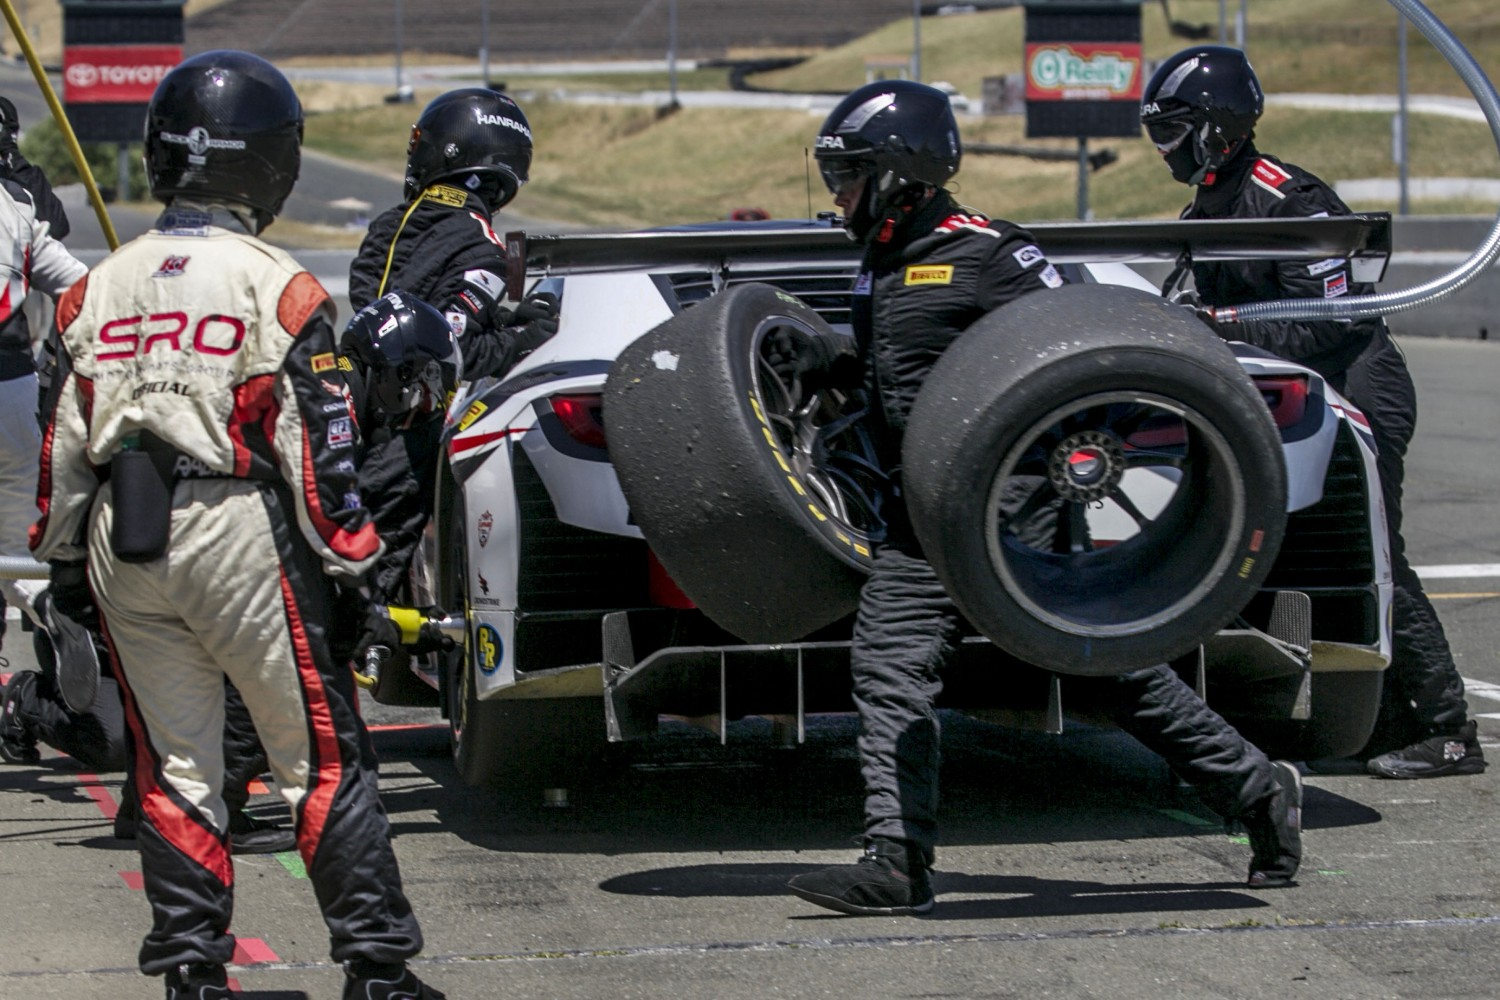 #80, Racers Edge Motorsports, Acura NSX, Martin Barkey and Kyle Marcelli, MBRP, SRO at Sonoma Raceway, Sonoma CA | Brian Cleary/SRO Motorsports Group